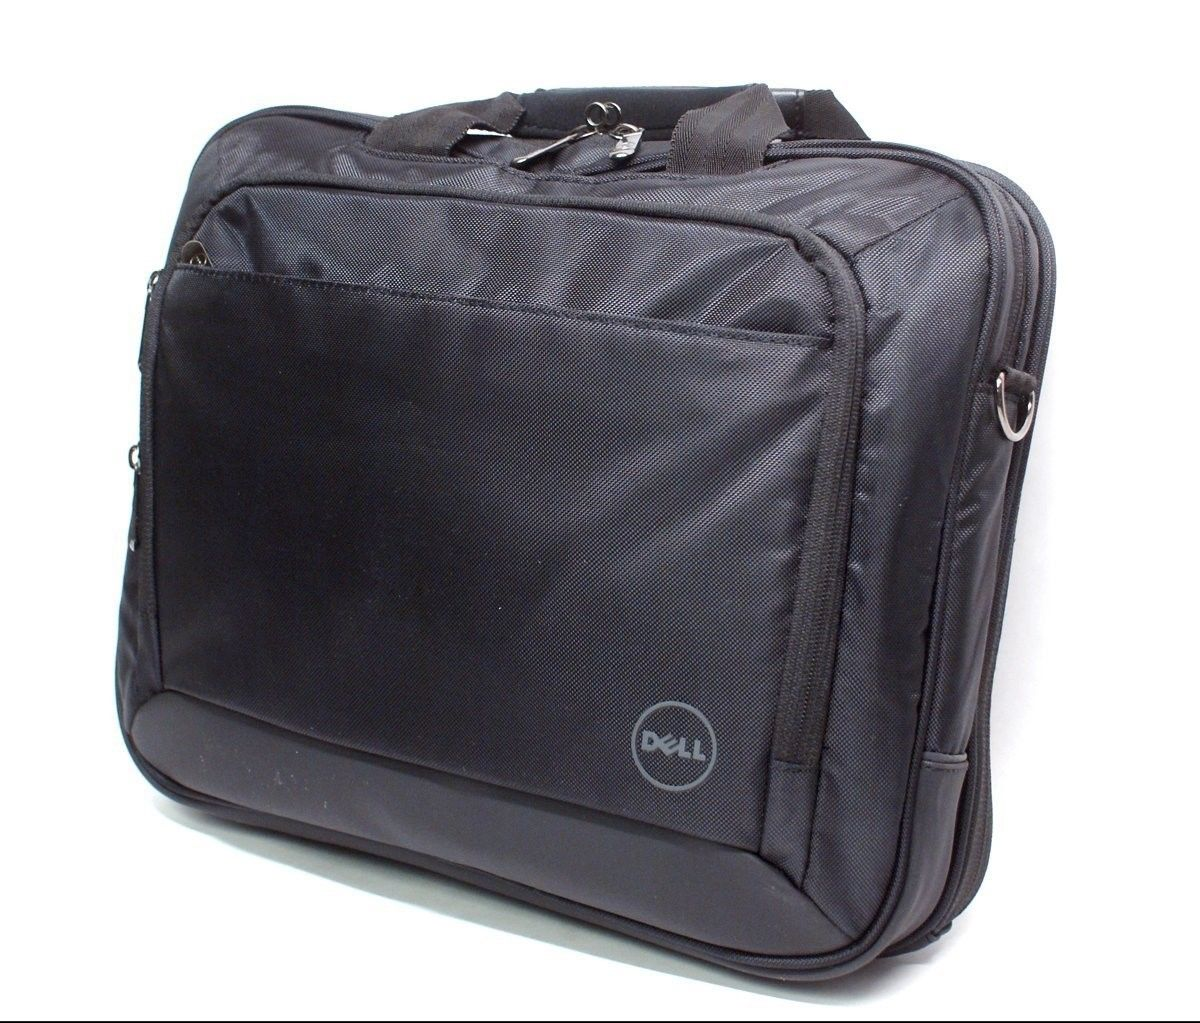 "Dell Laptop Bag with Shoulder Strap Fits up to 15.6"" Nylon Black WG1V8 0WG1V8"